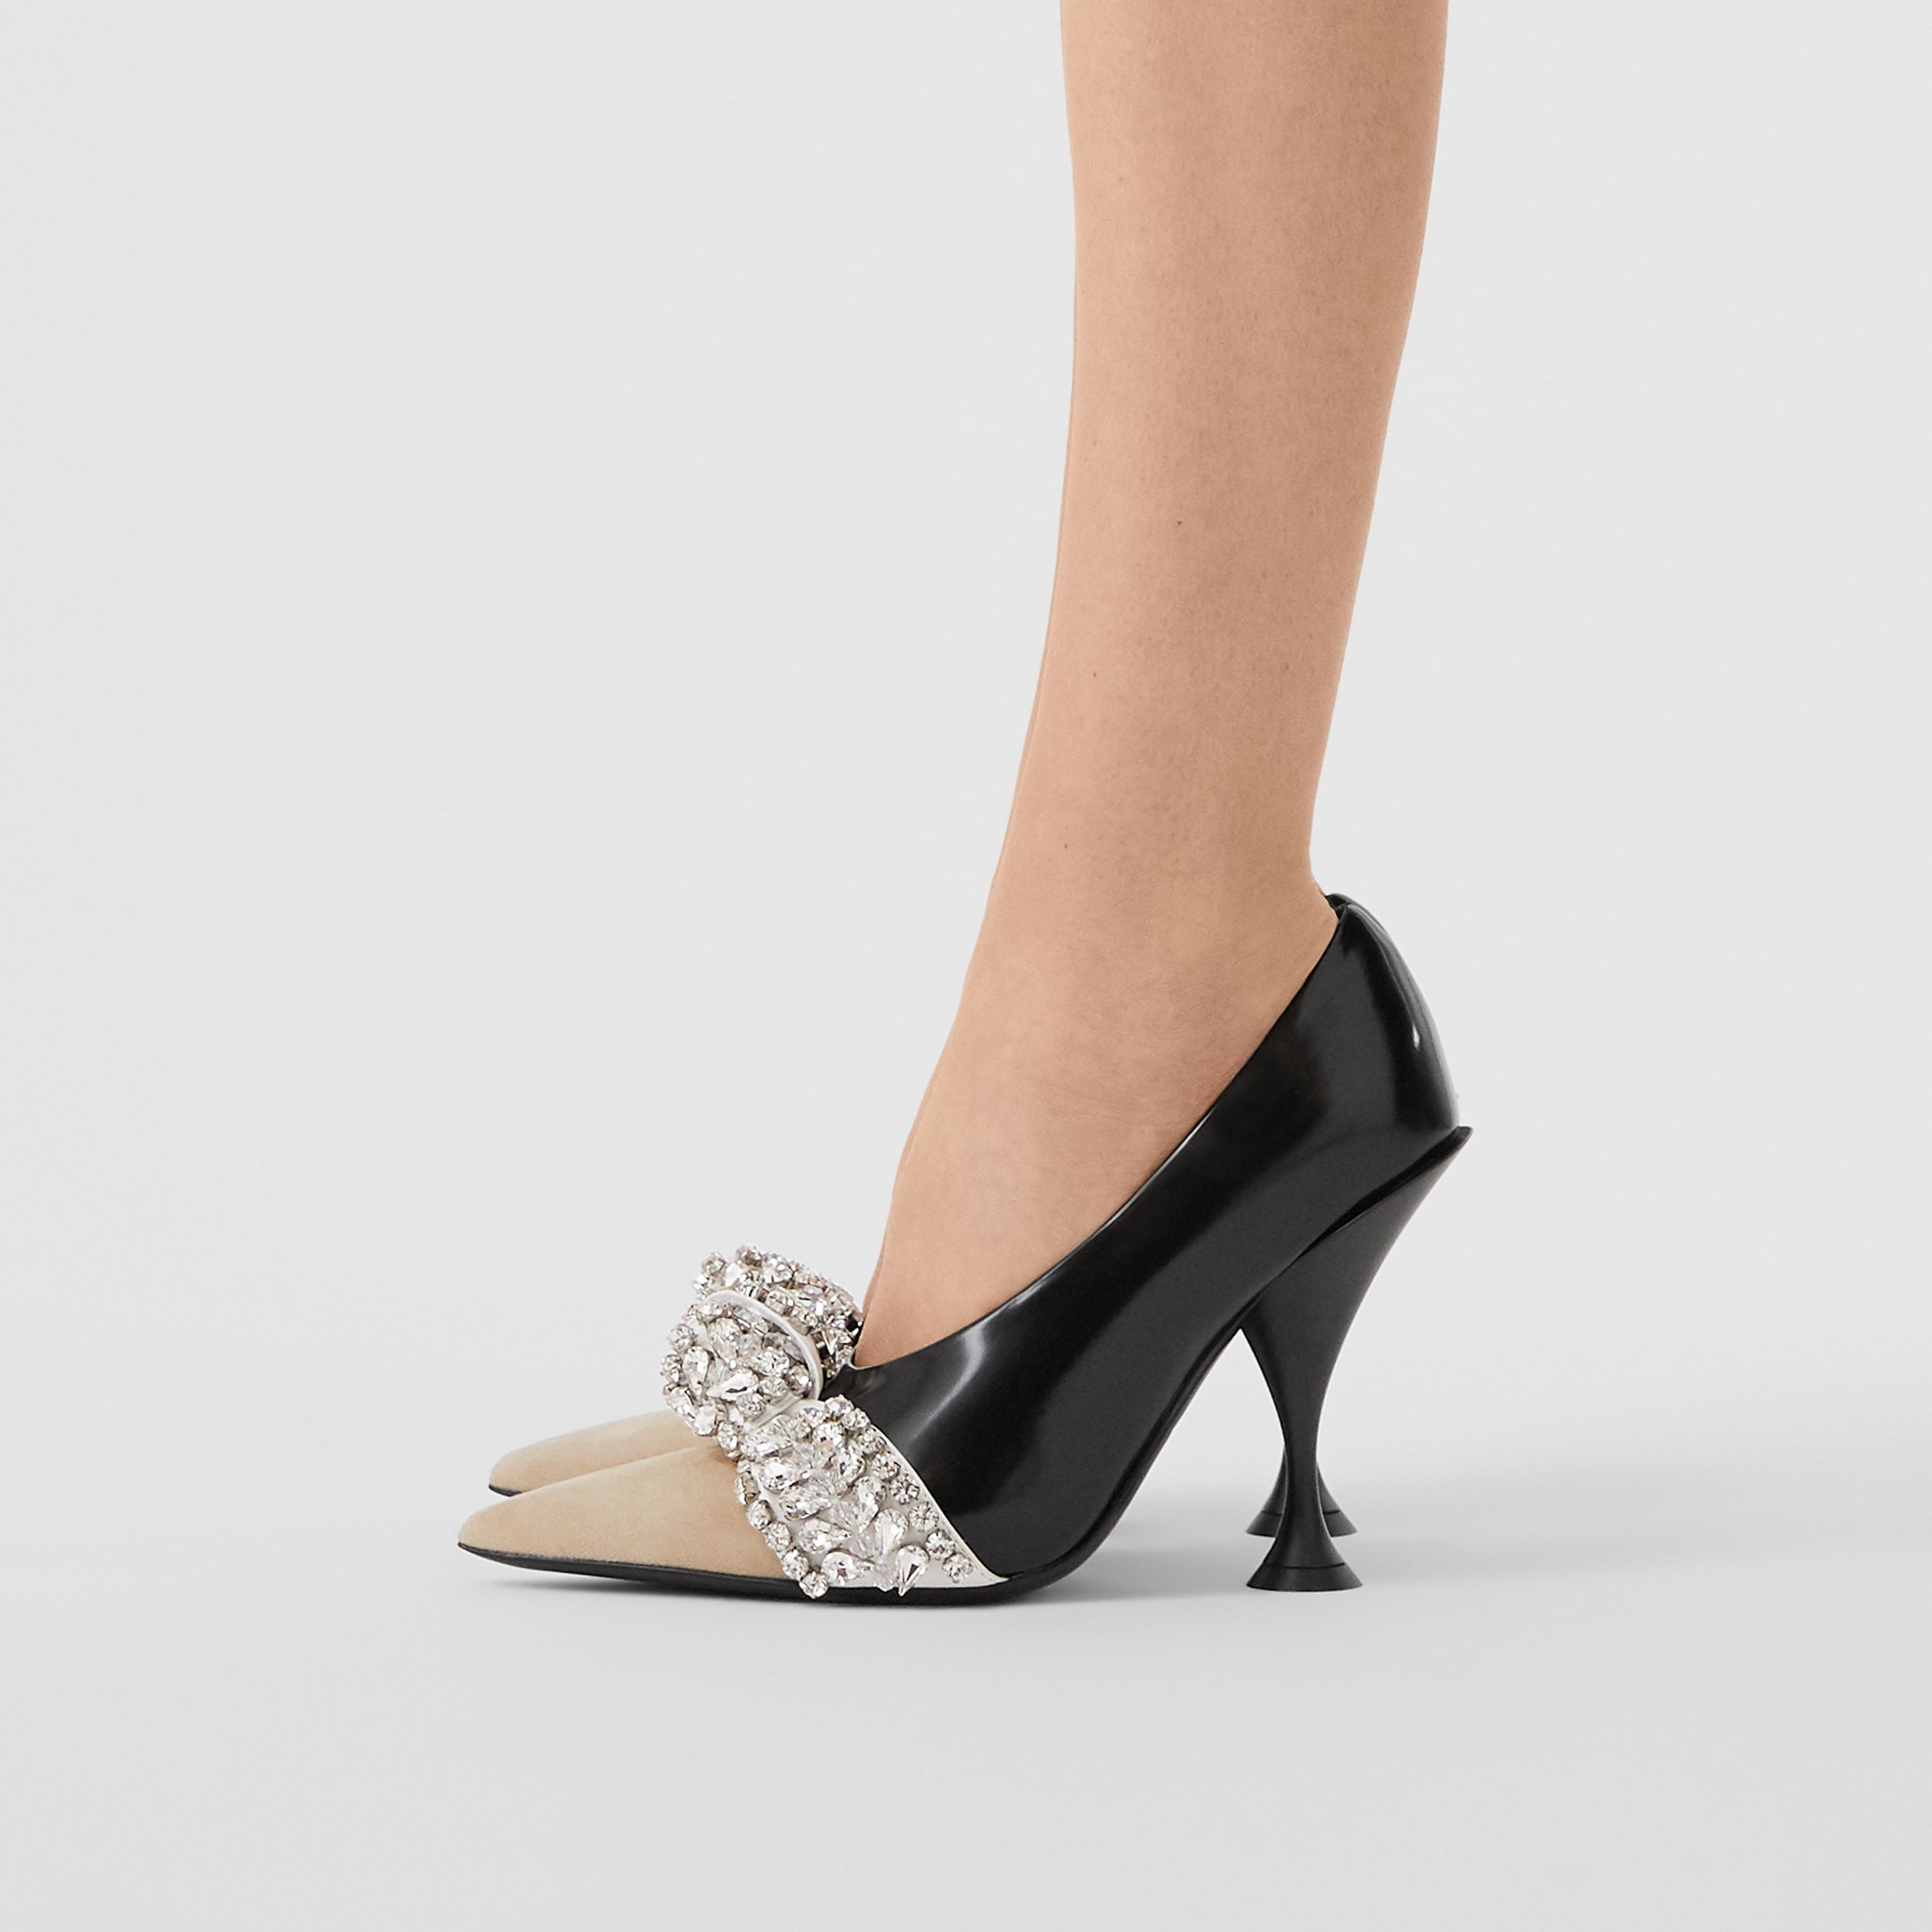 Crystal Detail Leather and Suede Point-toe Pumps in Black - Women | Burberry - 3